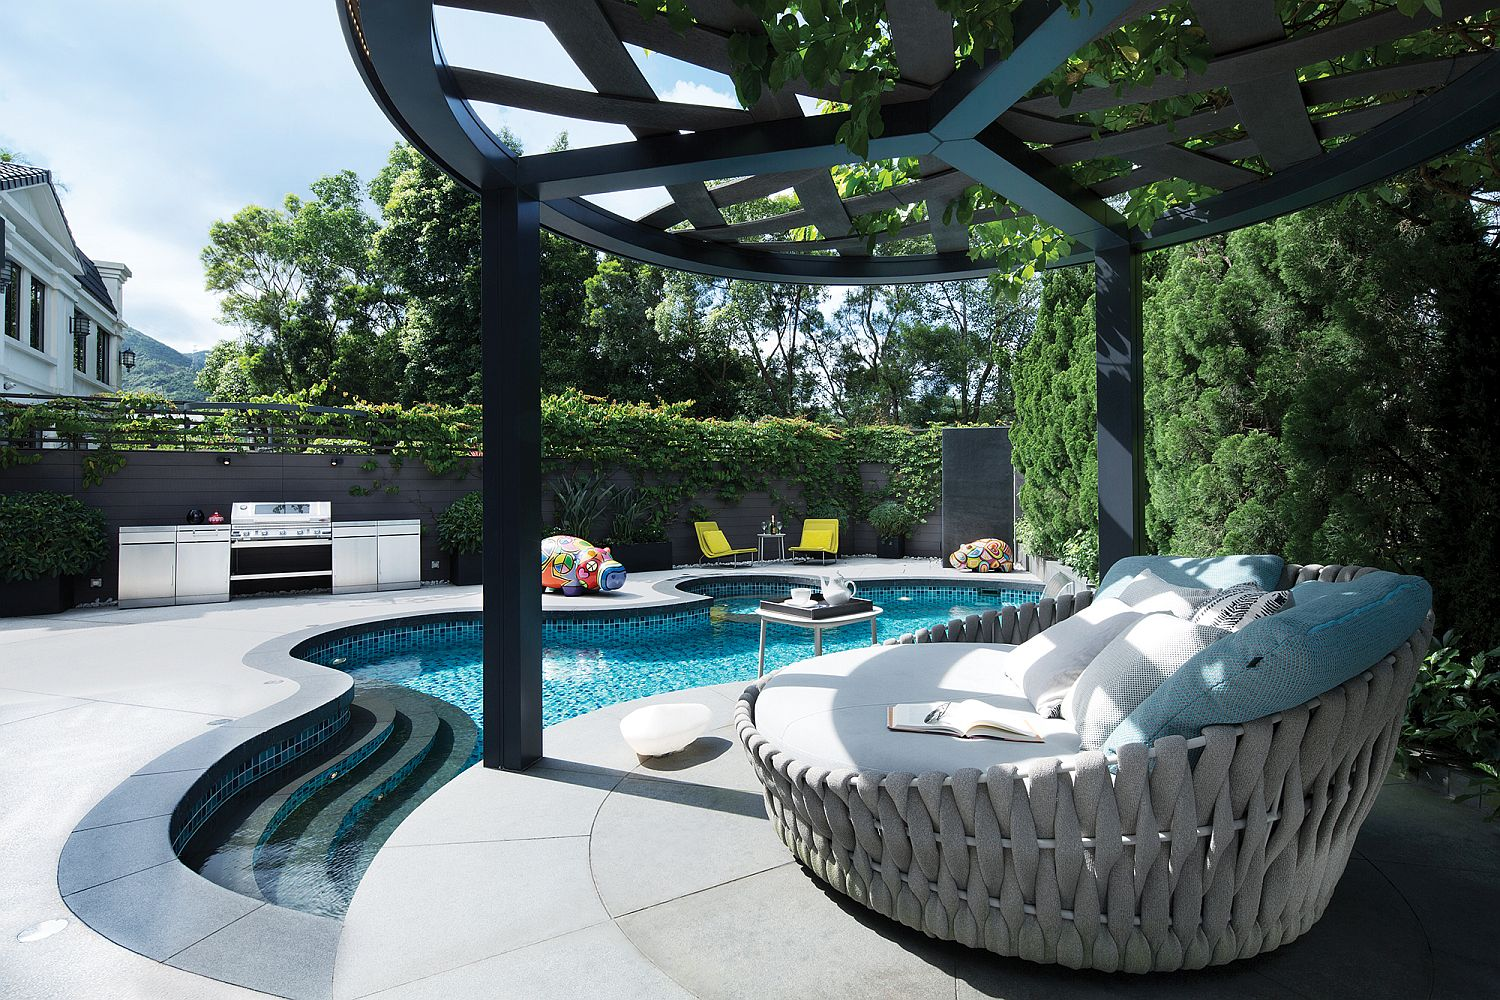 Curvy-pool-area-with-a-fabulous-pergola-next-to-it-and-comfy-lounger-91797